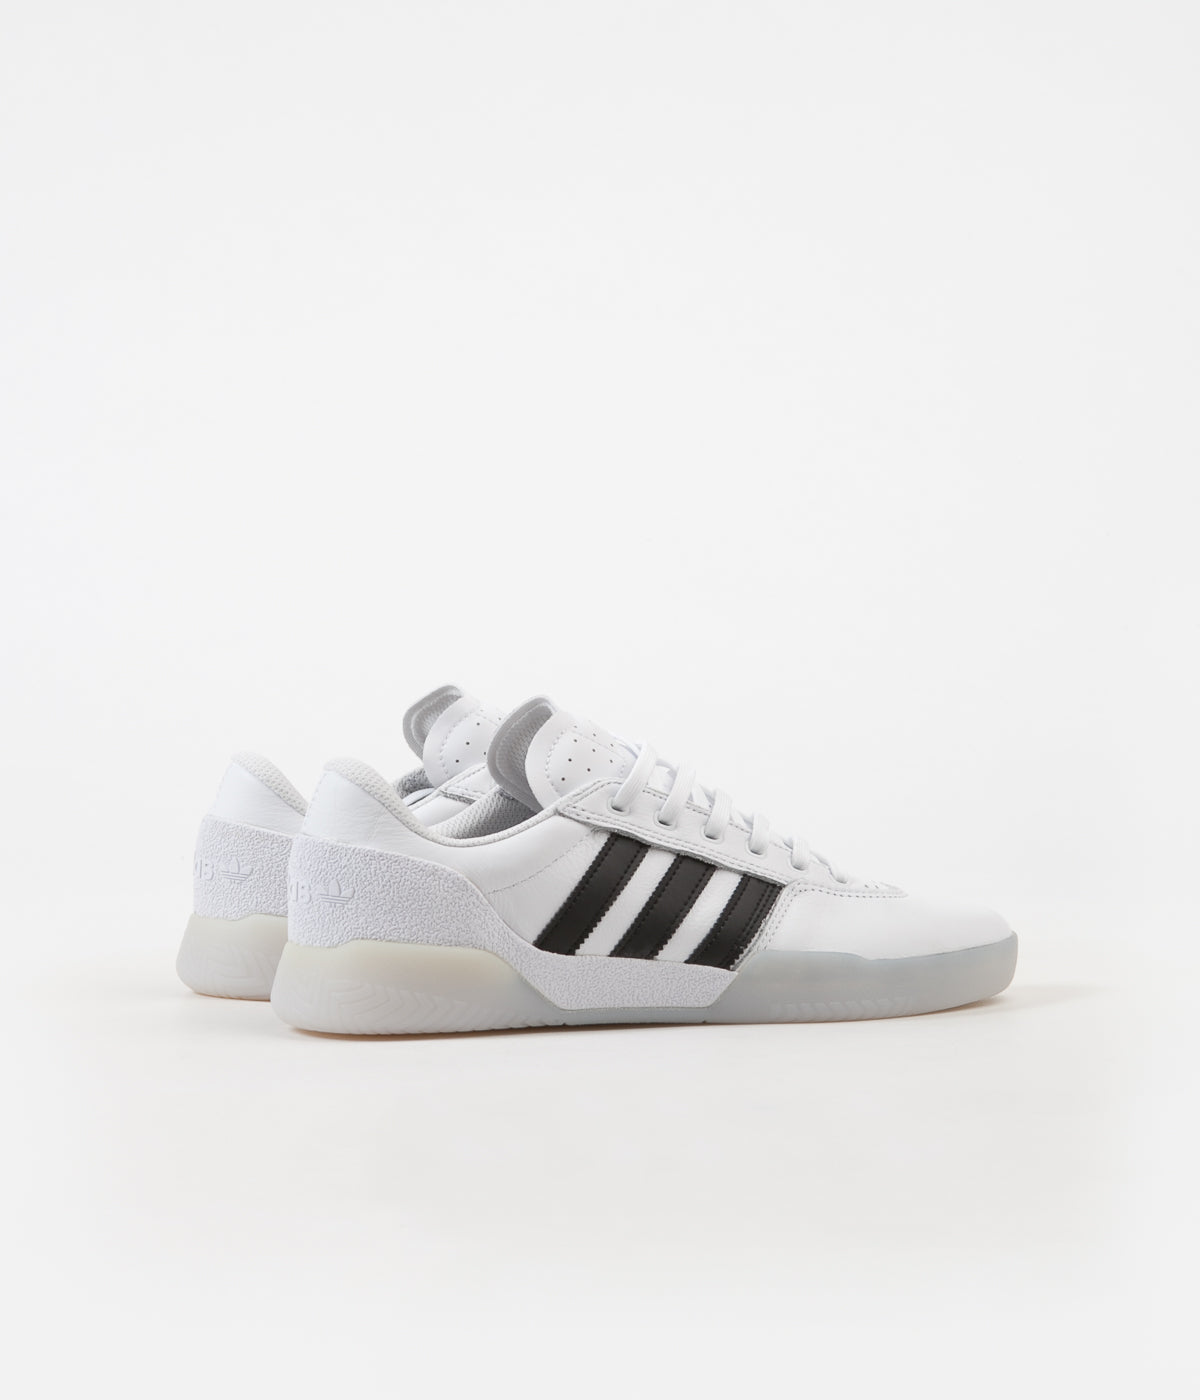 be221f3eeed ... Adidas City Cup Shoes - White   Core Black   Light Solid Grey ...